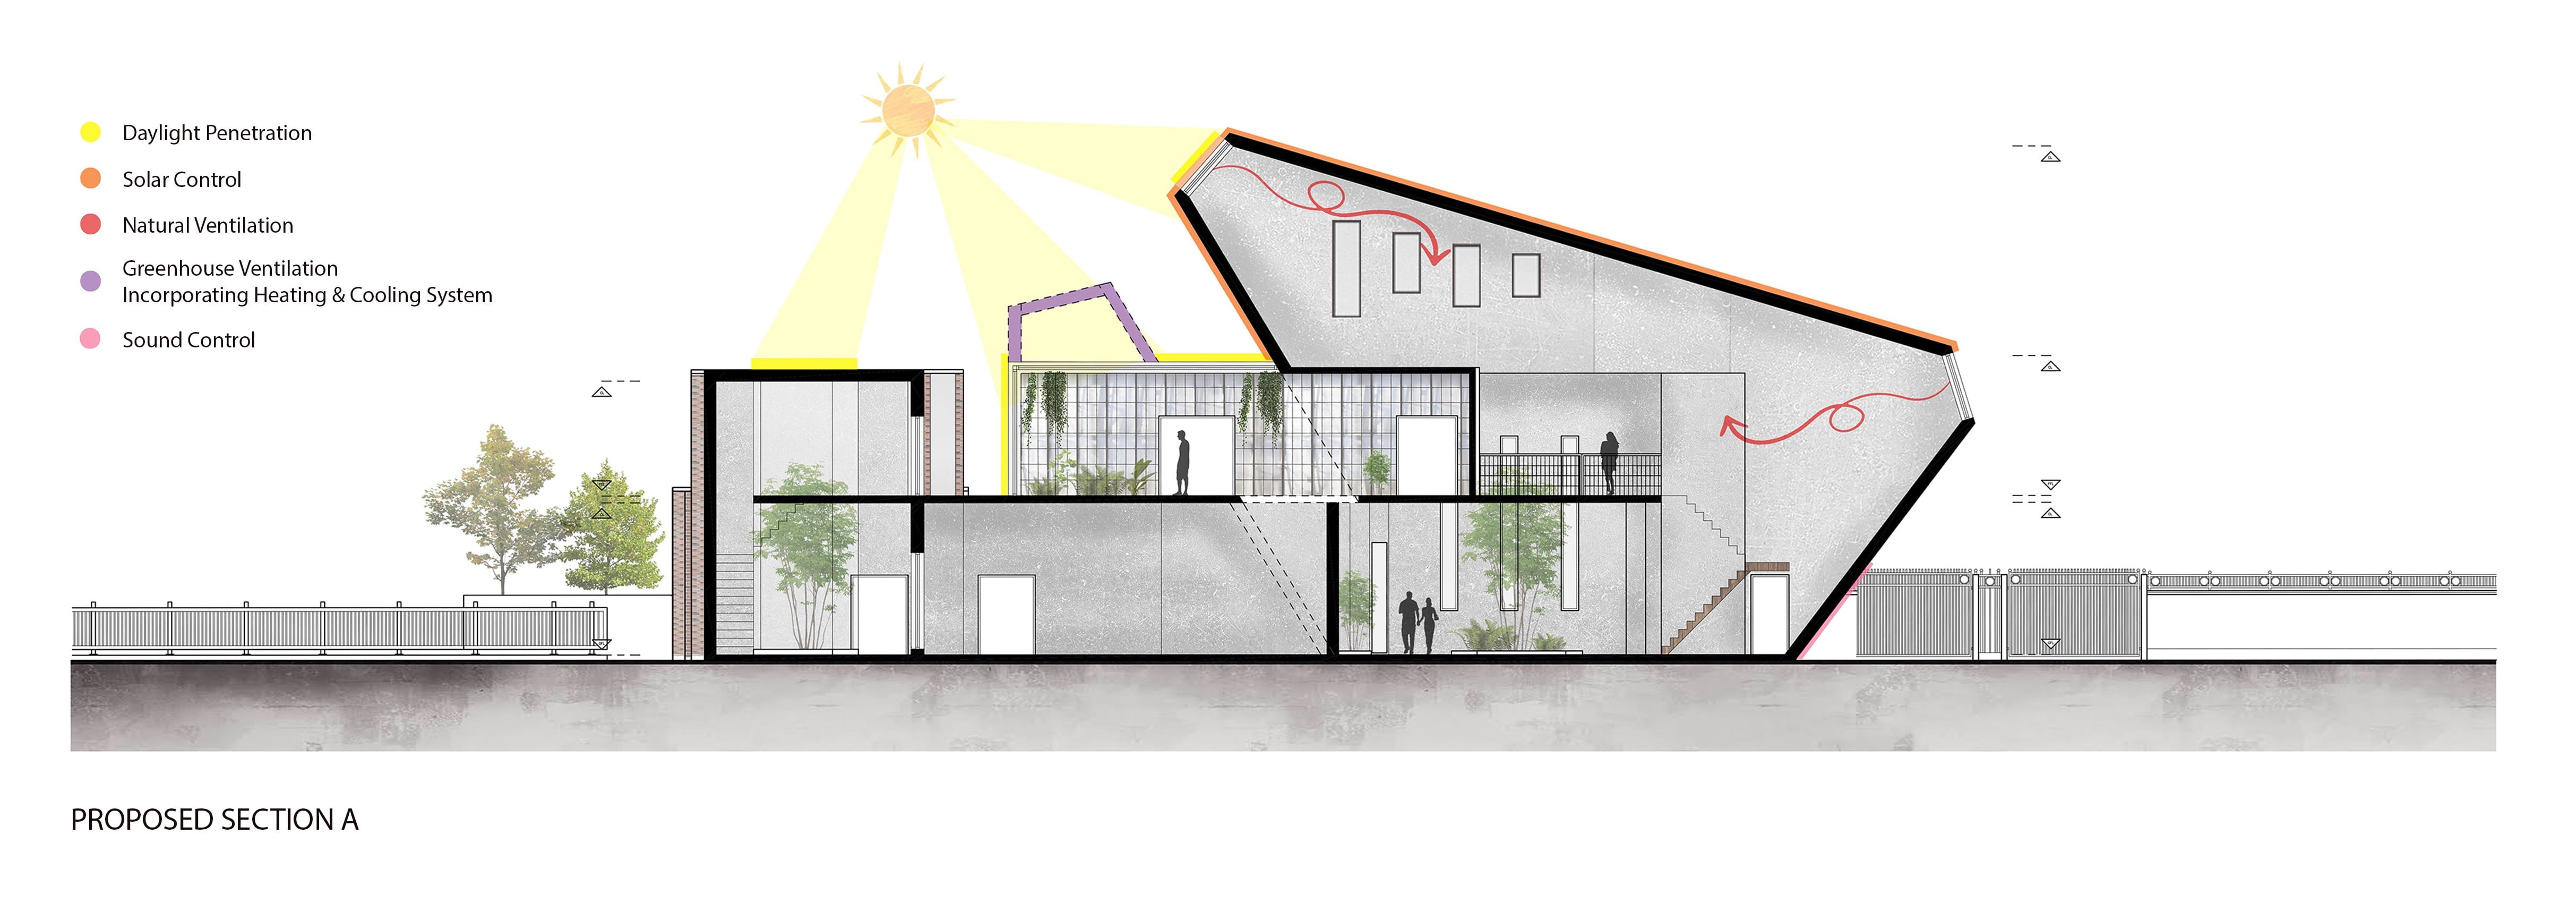 Sectional of building design showing how light enters the building